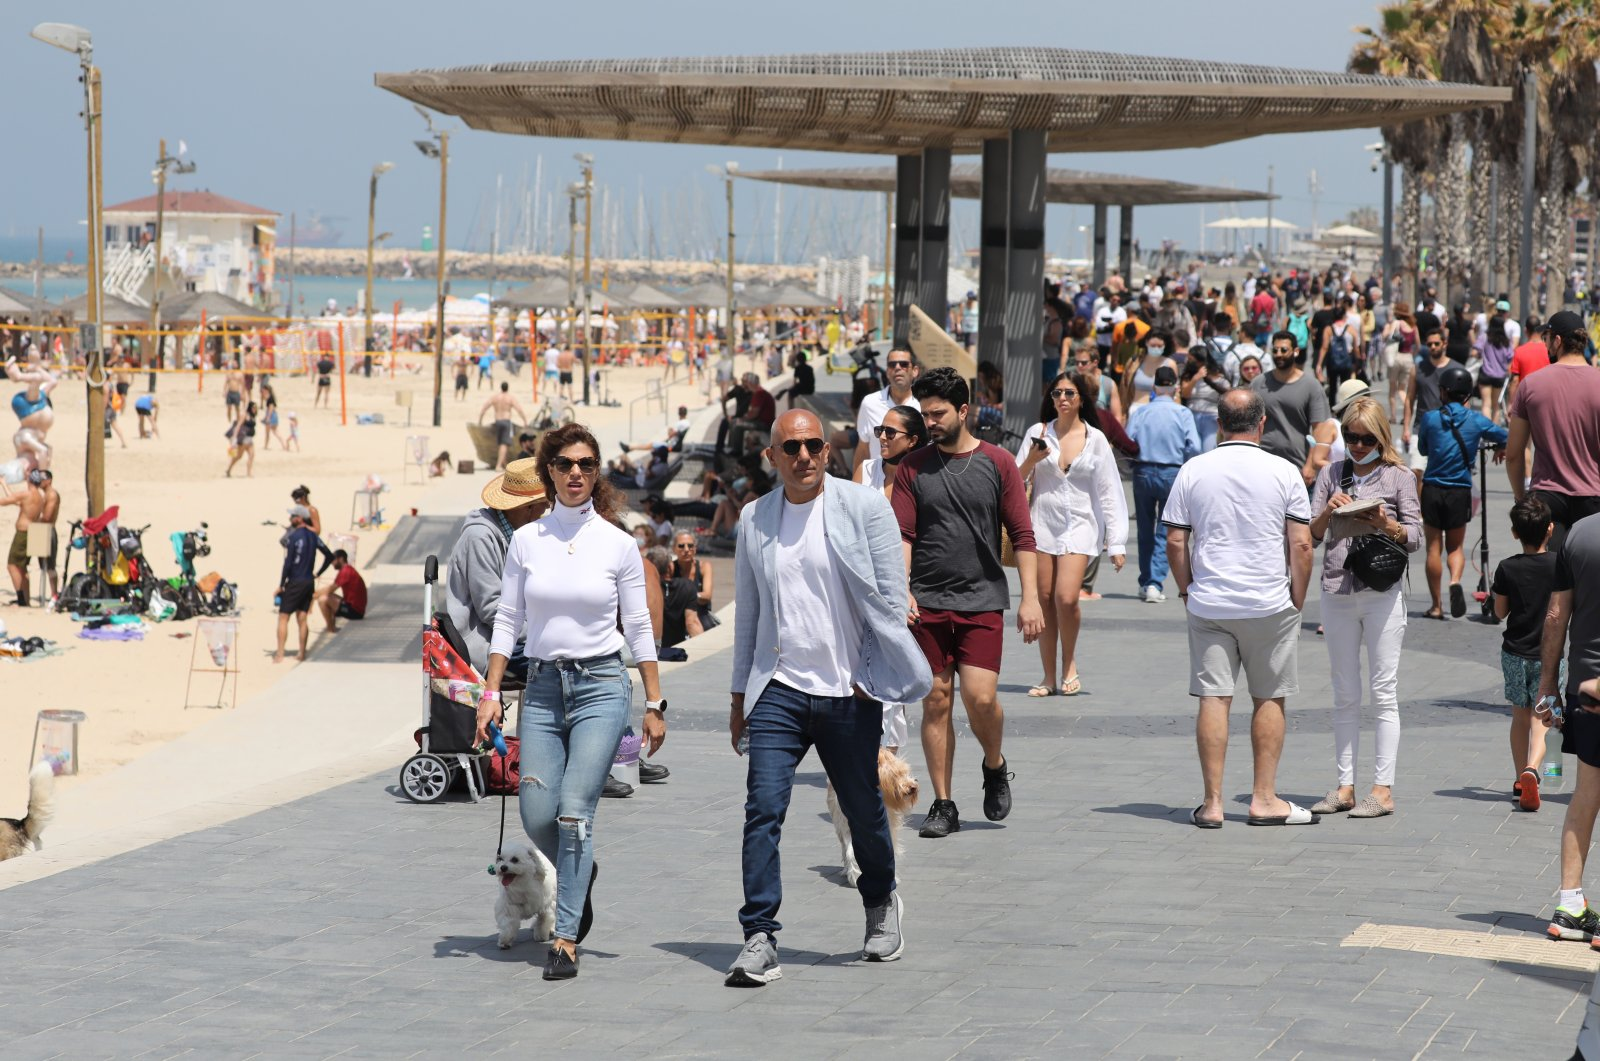 People without face masks enjoy a sunny day out at a beach in Tel Aviv, Israel, April 17, 2021. (EPA Photo)